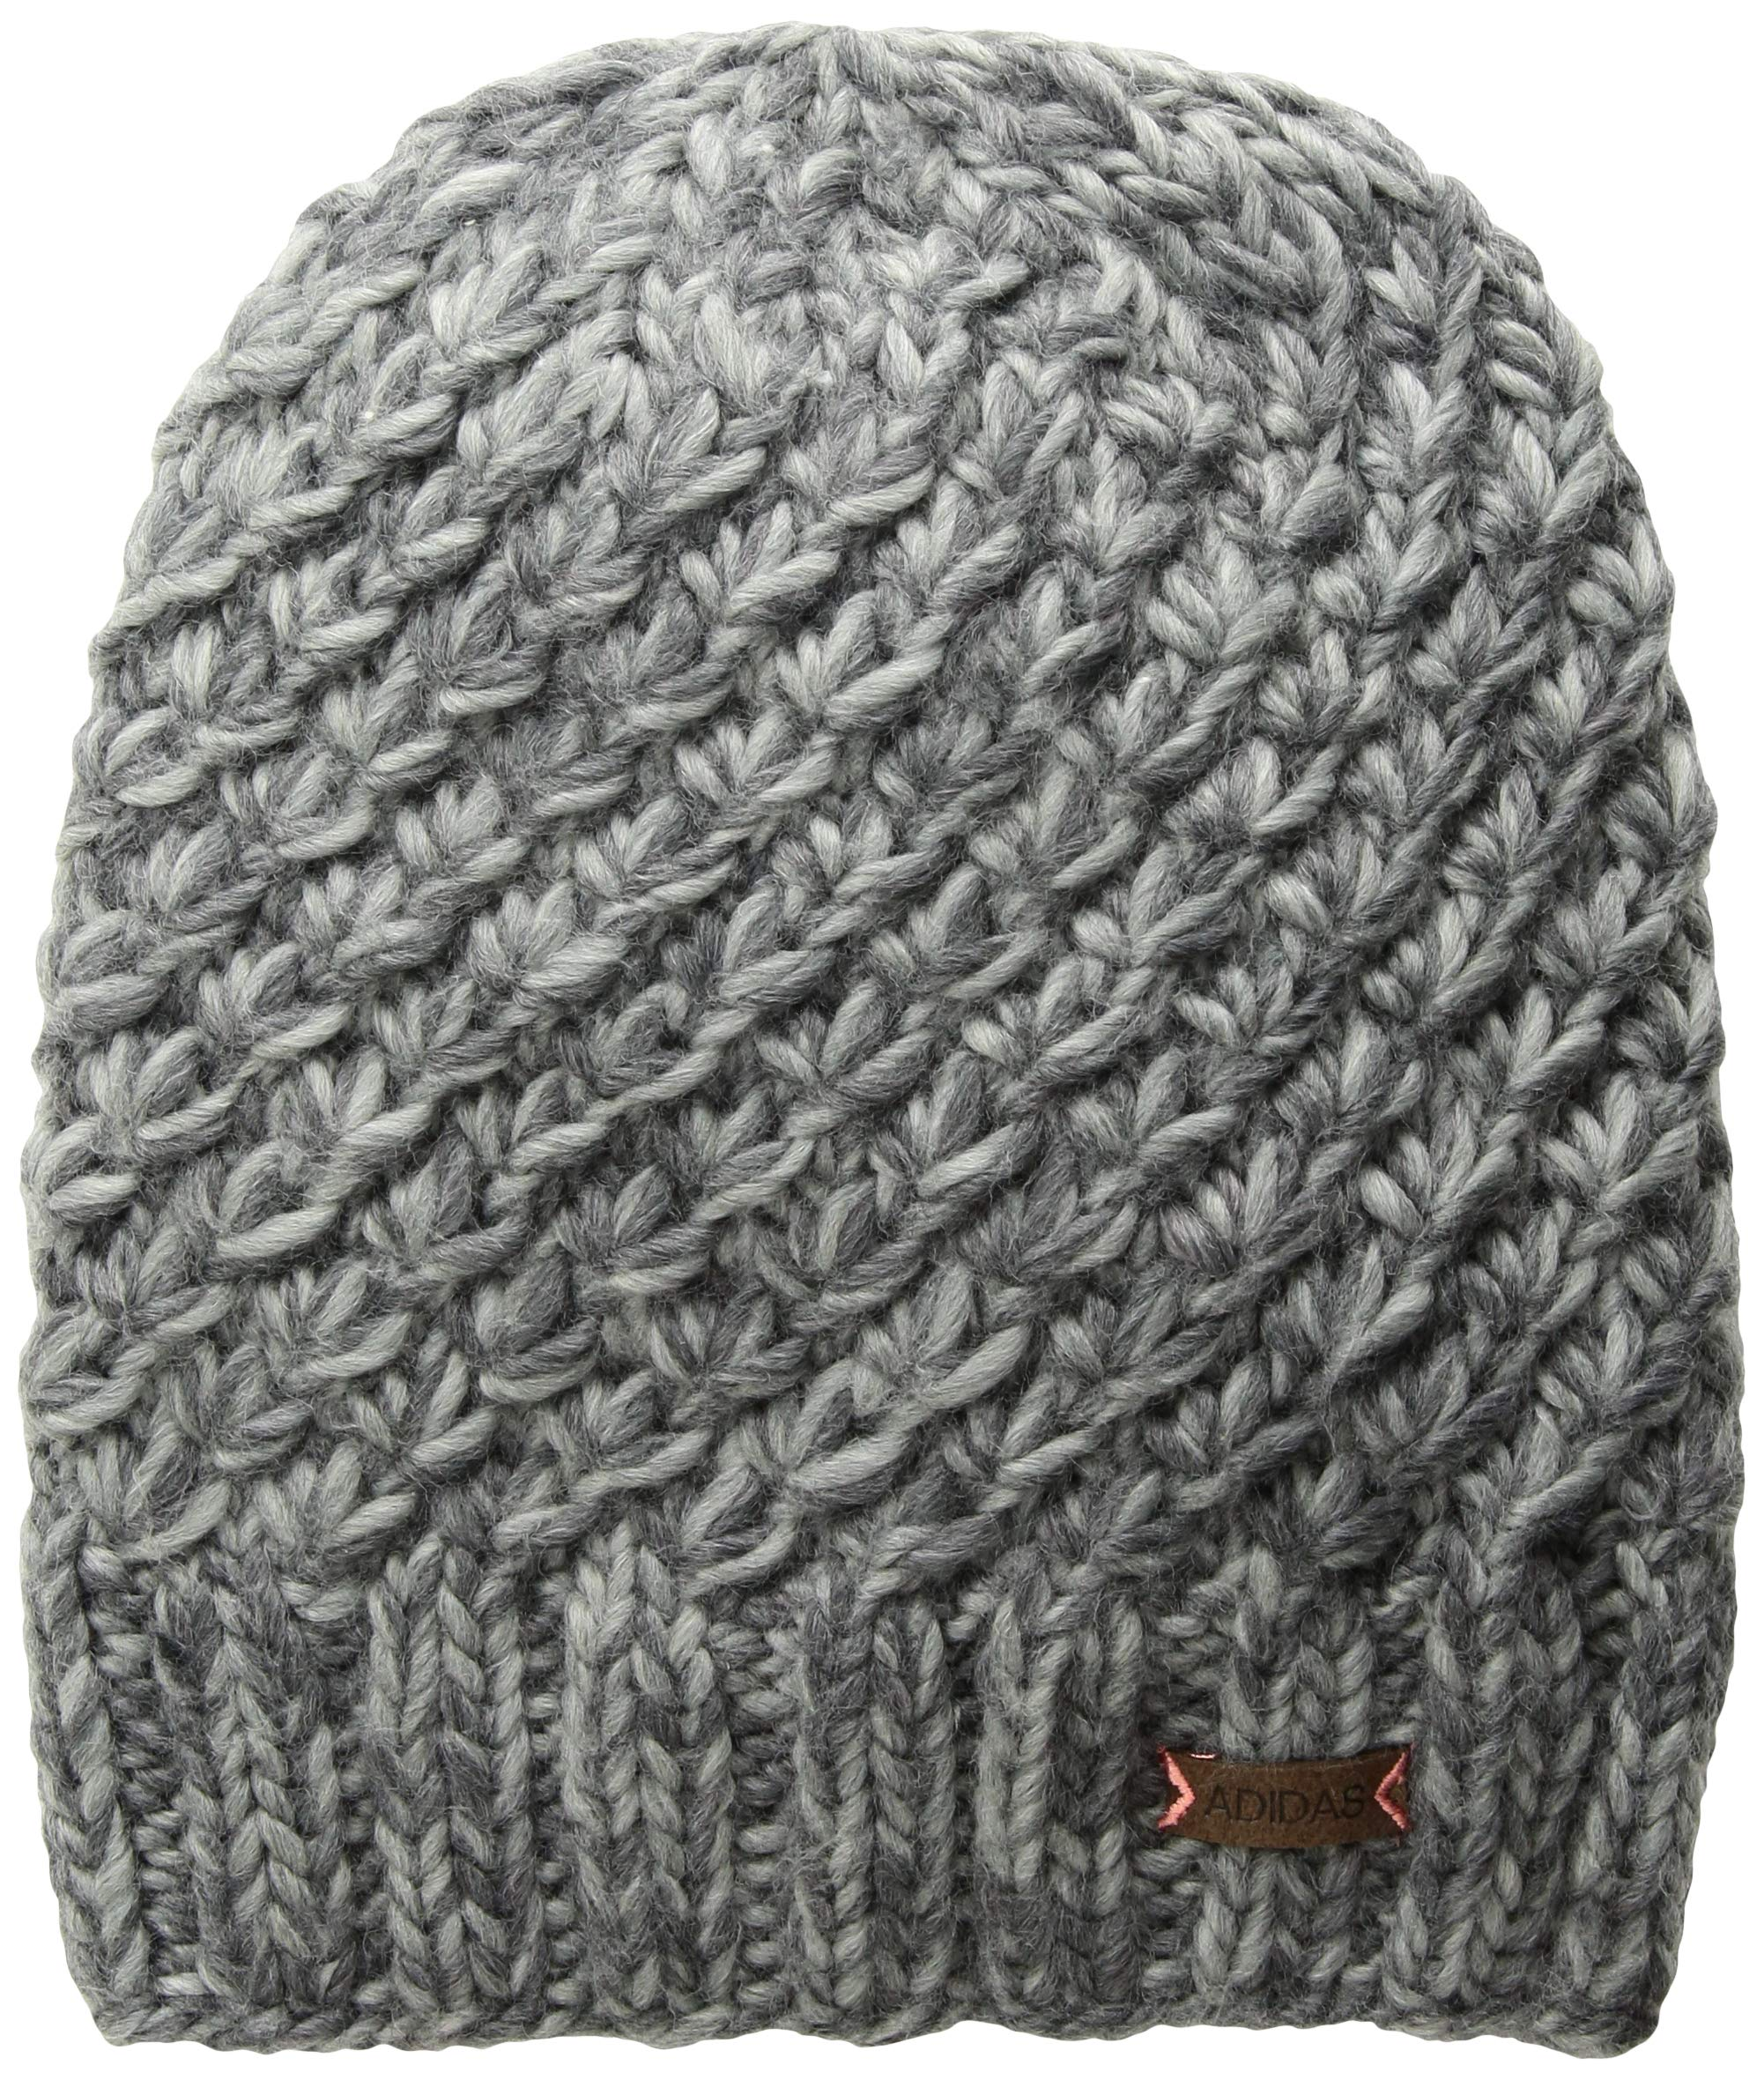 adidas Women's Whittier Beanie, Deepest/Space Grey Marl/Tactile Rose, One Size